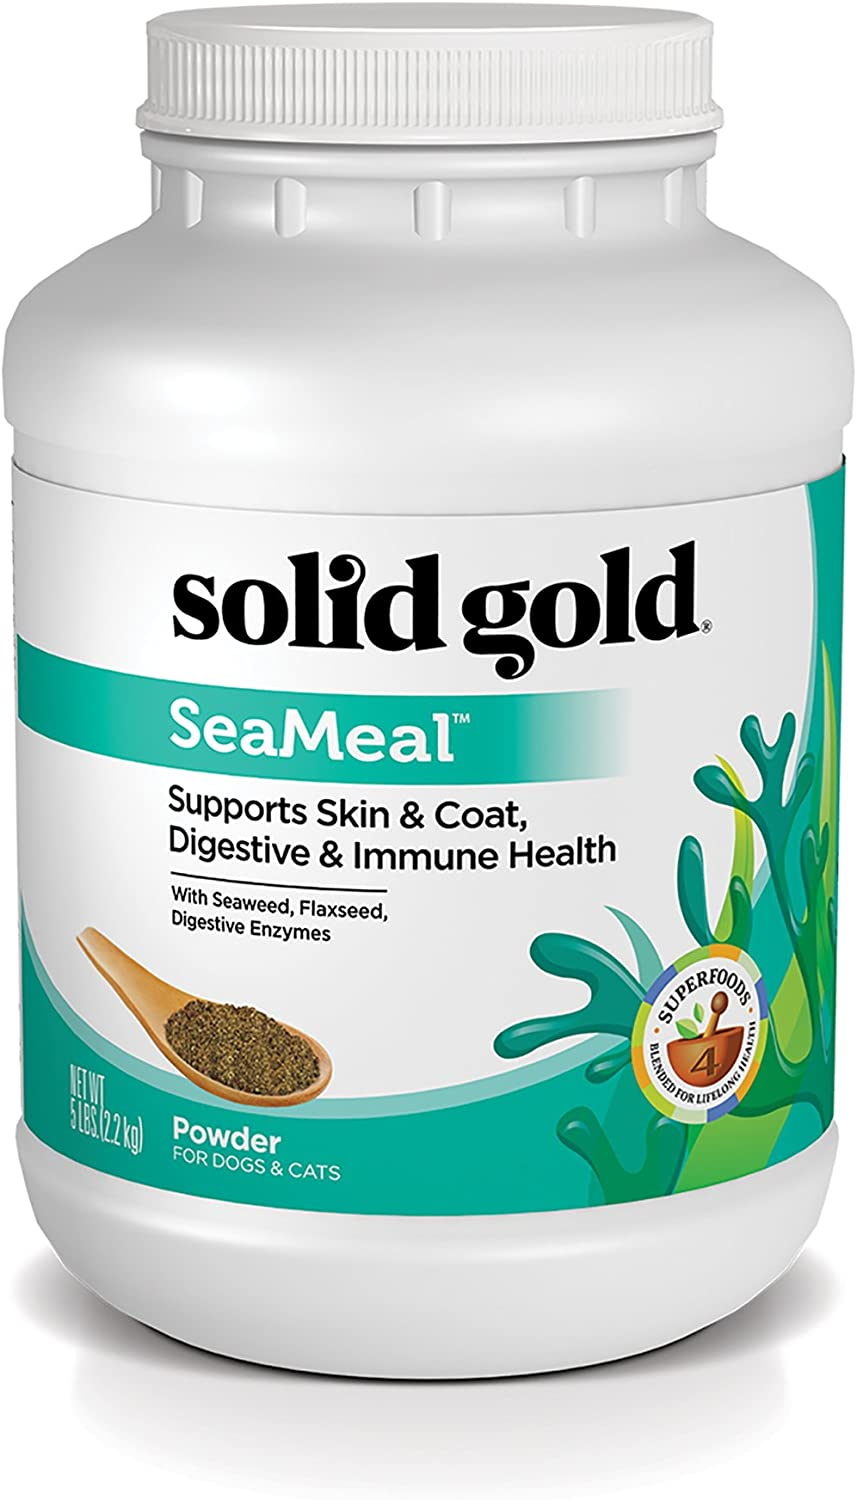 Solid Gold SeaMeal Kelp-Based Supplement for Skin & Coat, Digestive & Immune Health in Dogs & Cats; Natural, Holistic Grain-Free Supplement